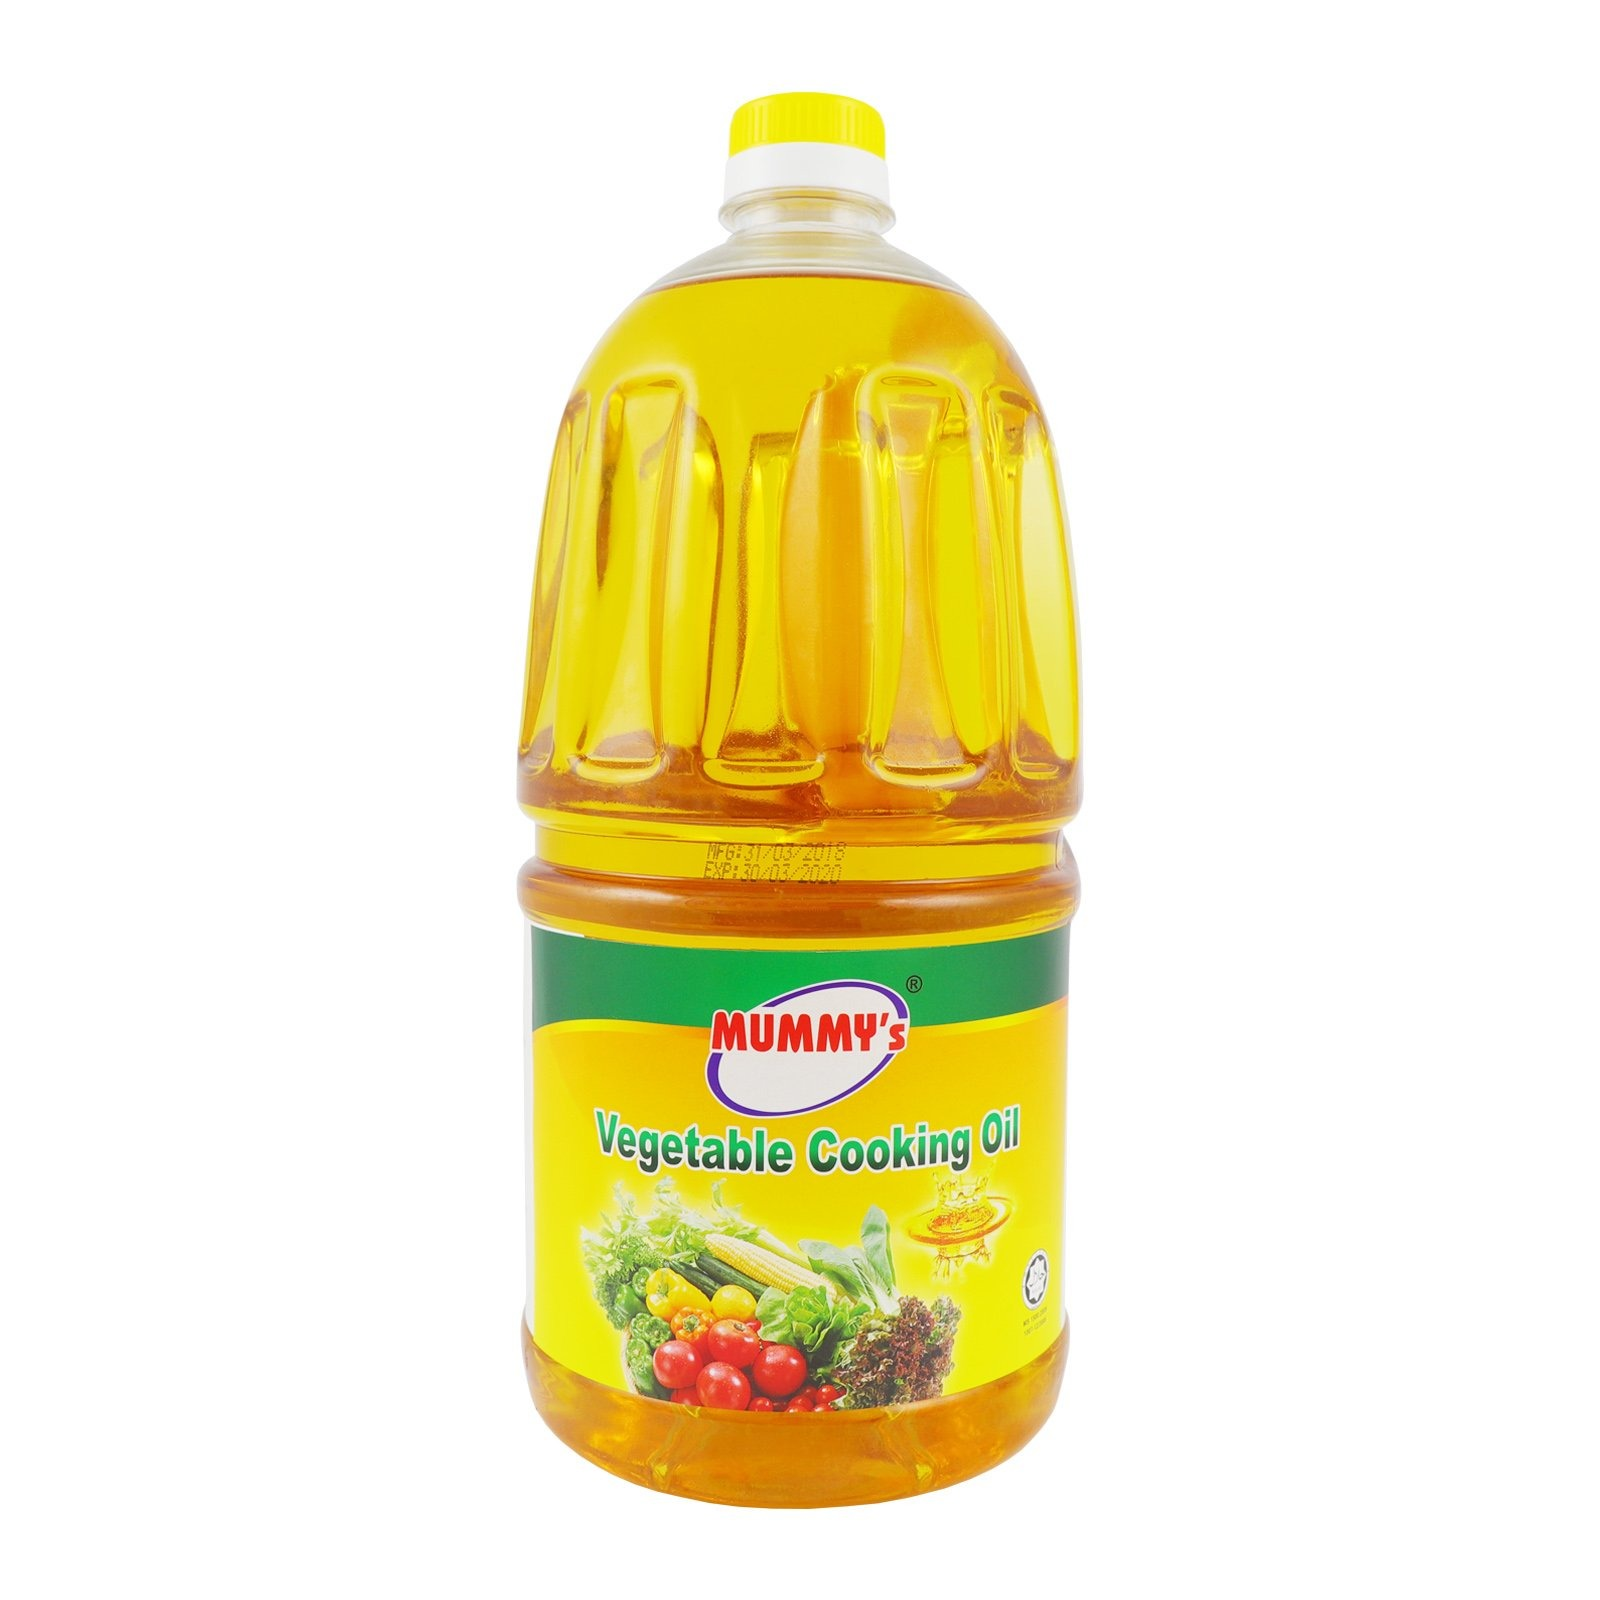 Mummys Vegetable Cooking Oil